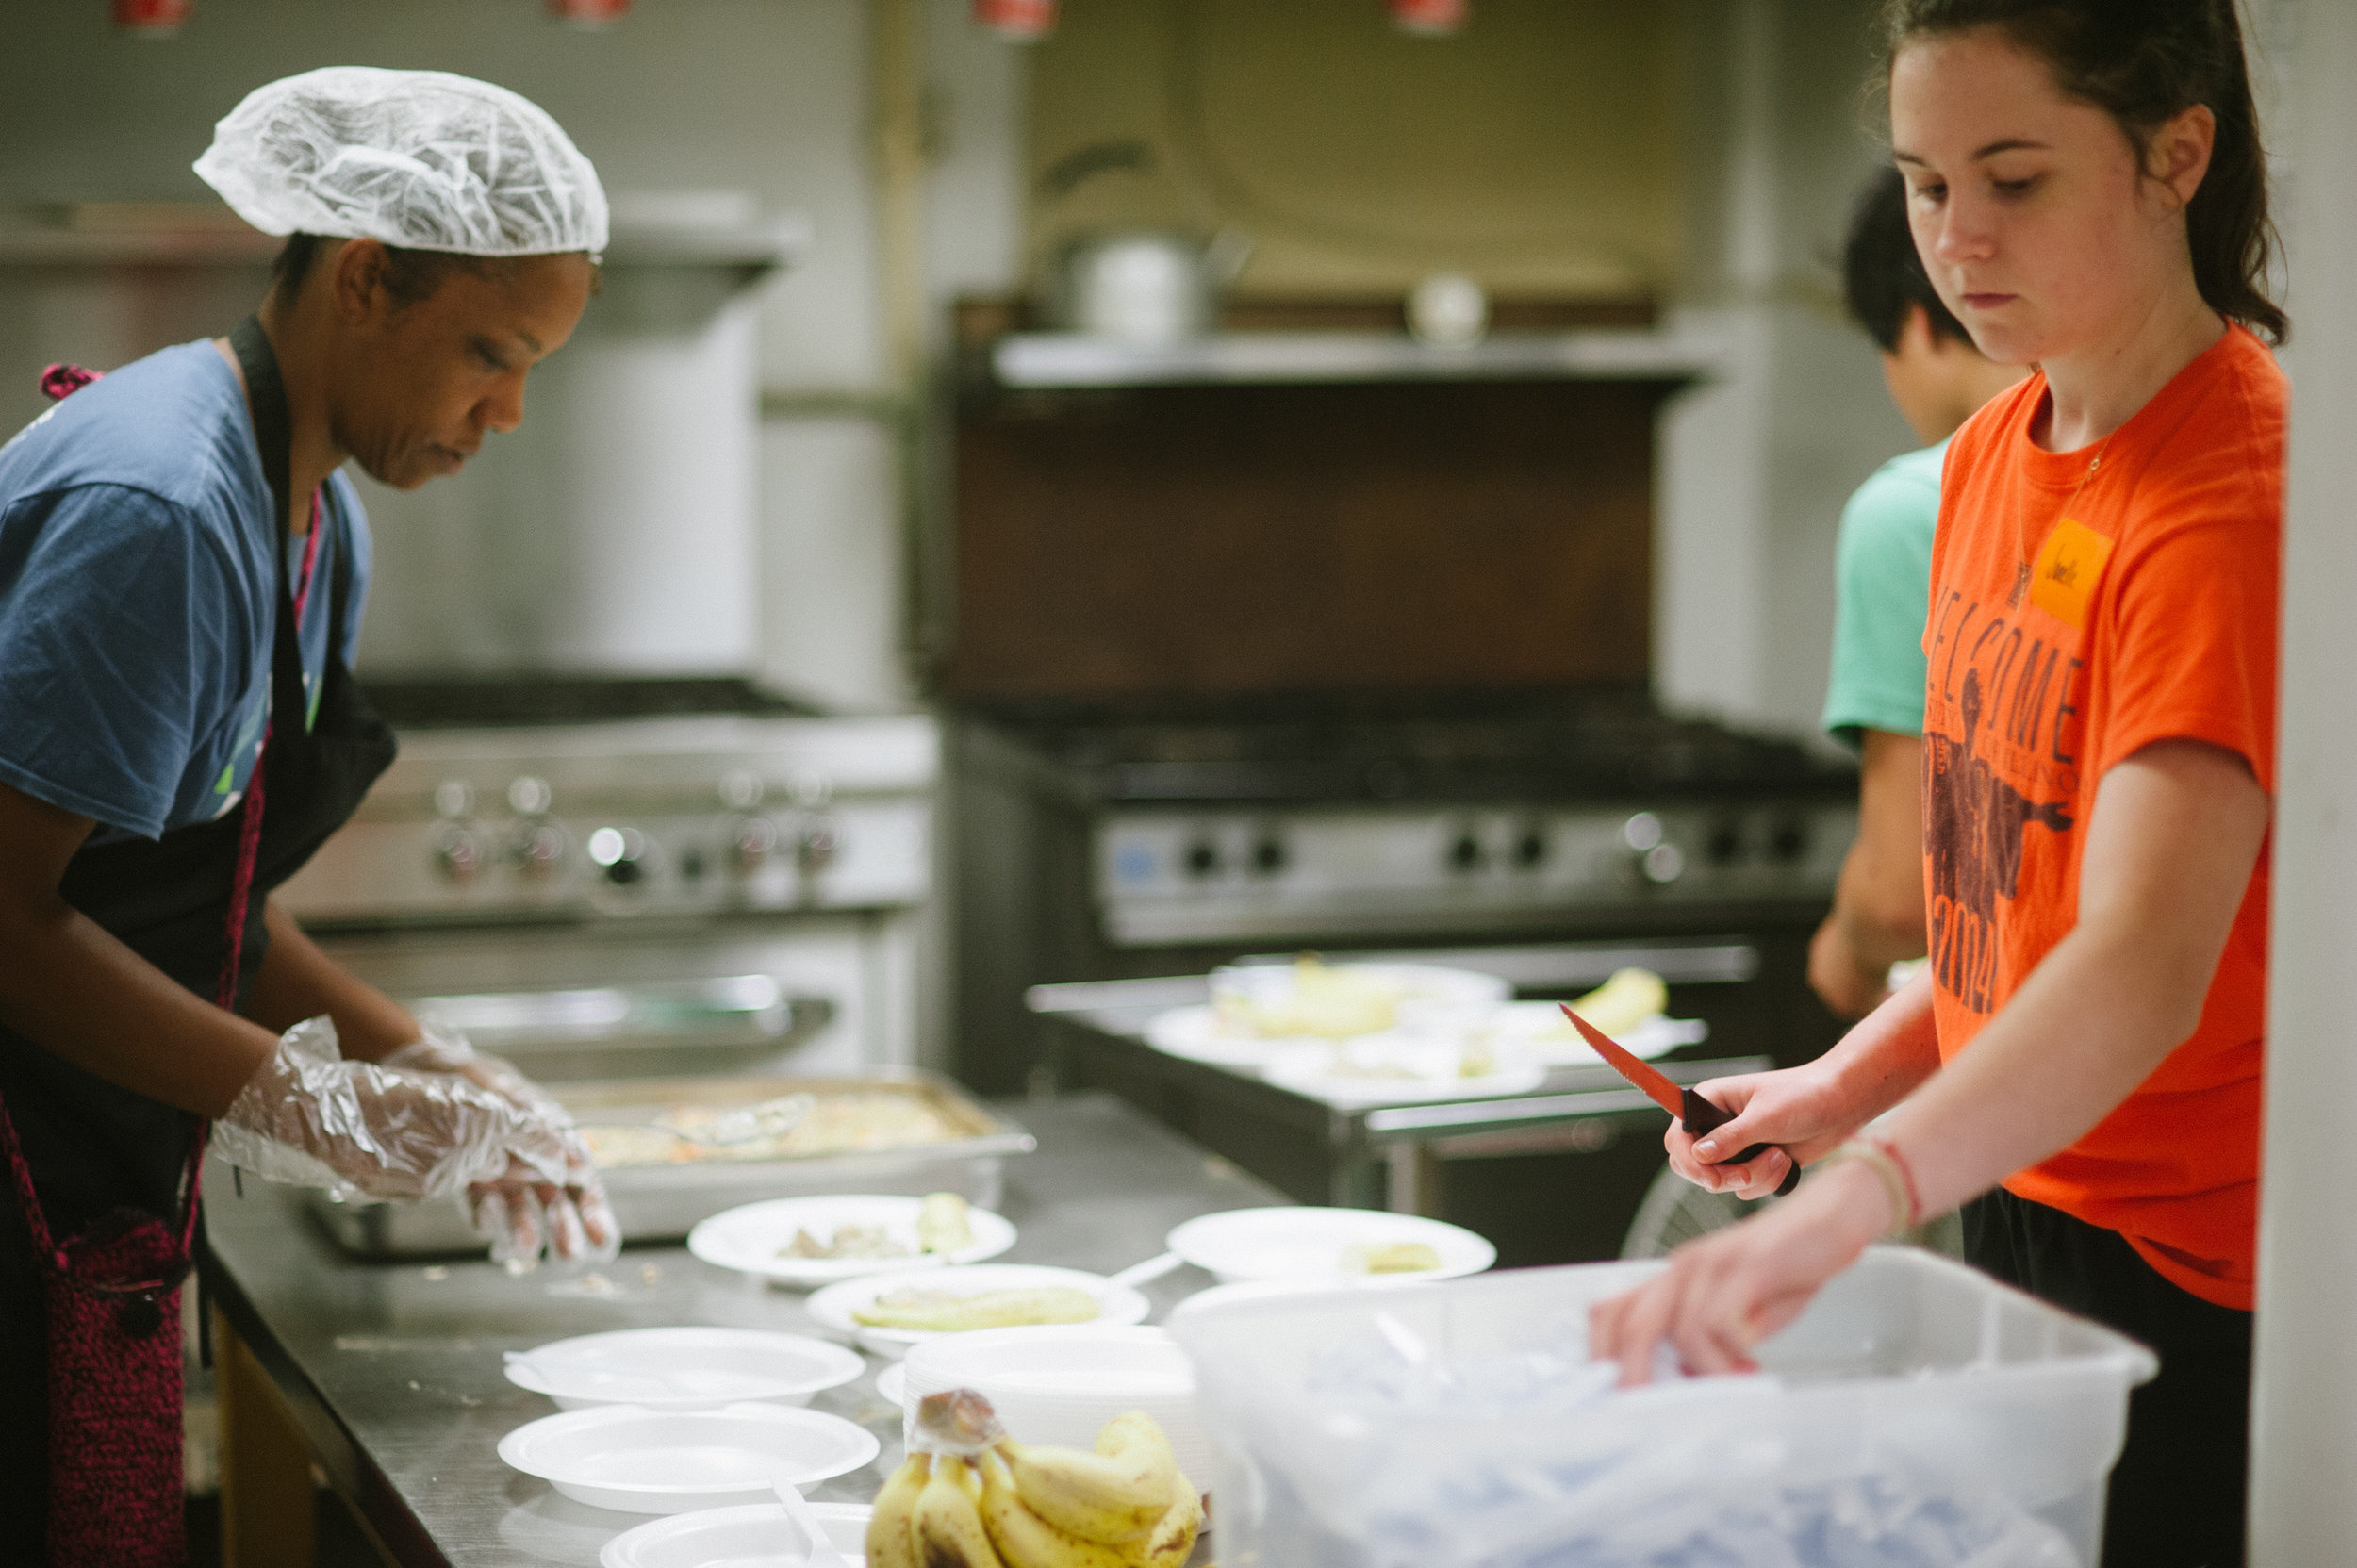 Play Food Team - Pick an open slot to serveServe dinner to children in our after school programs.